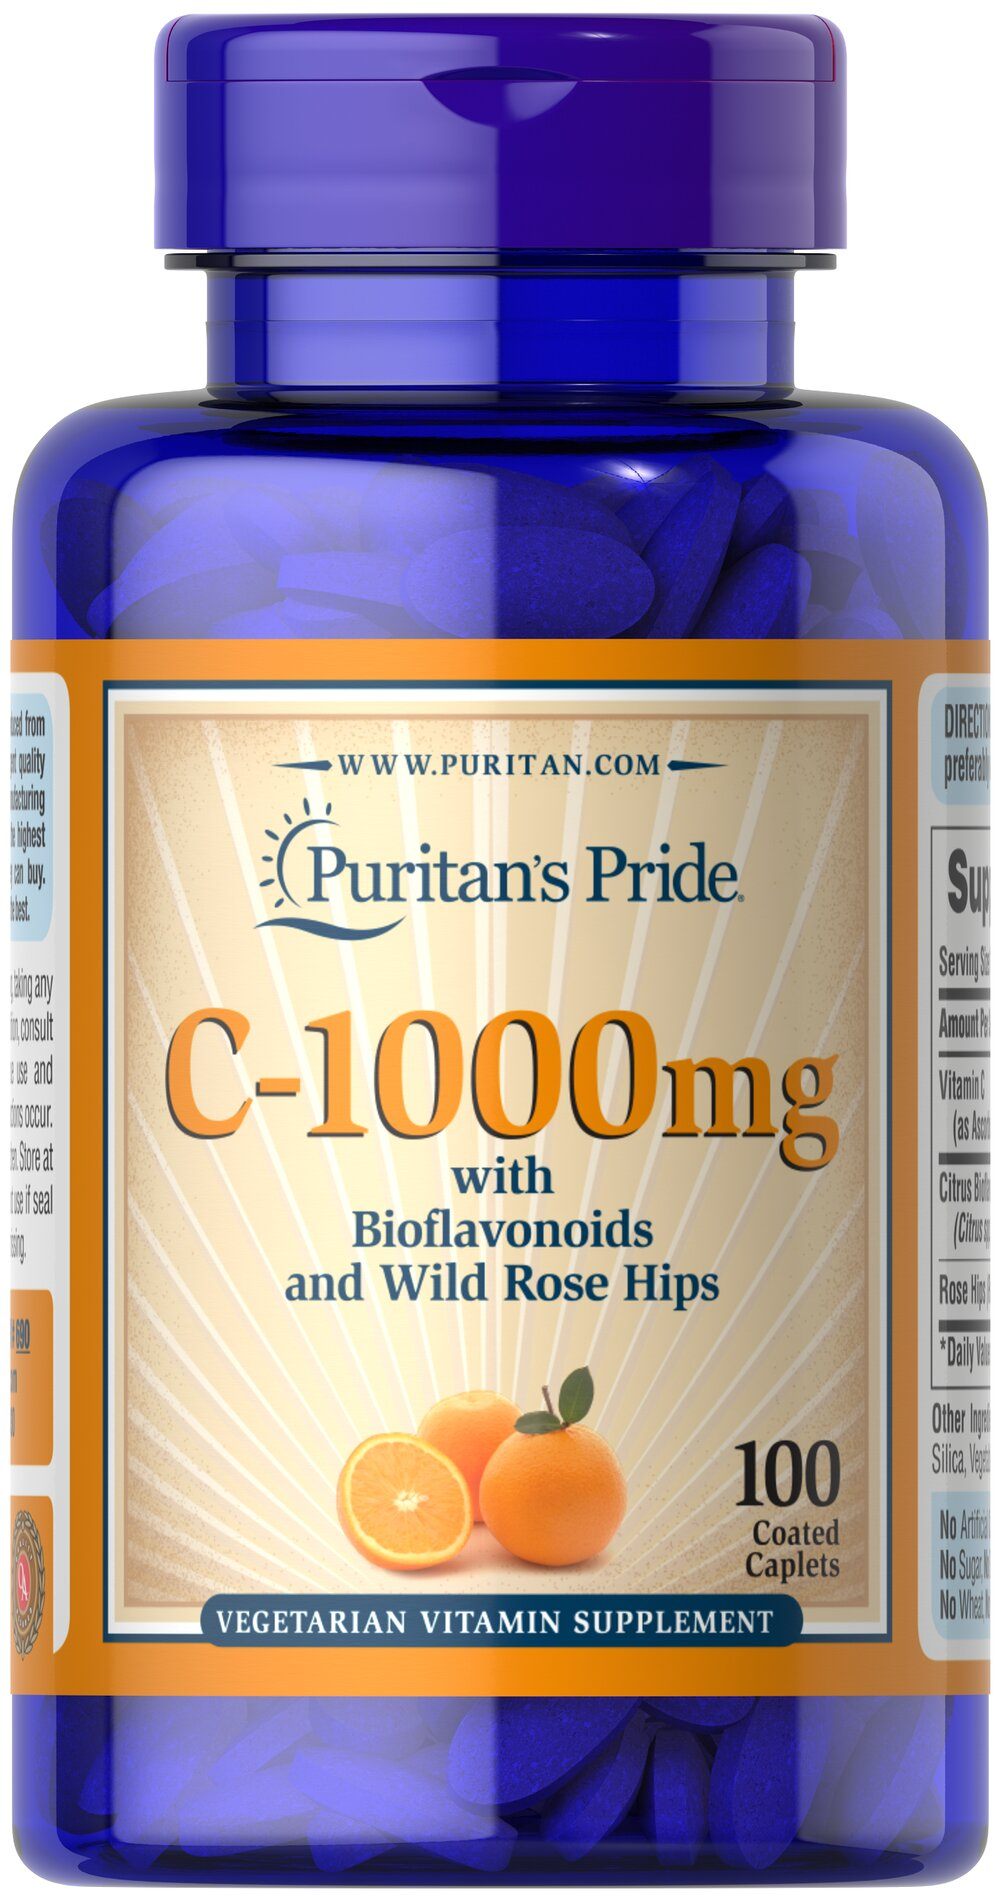 Vitamin C-1000 mg with Bioflavonoids & Rose Hips <p>Vitamin C is essential to many functions in the body and is one of the leading vitamins for immune support and helps fight cell-damaging free radicals.** Our product also includes Rose Hips, which help the body absorb and utilize Vitamin C.**</p><p>Offers superior antioxidant support.**</p><p>Supports healthy immune function and promotes well-being.**</p> 100 Caplets 1000 mg $8.79